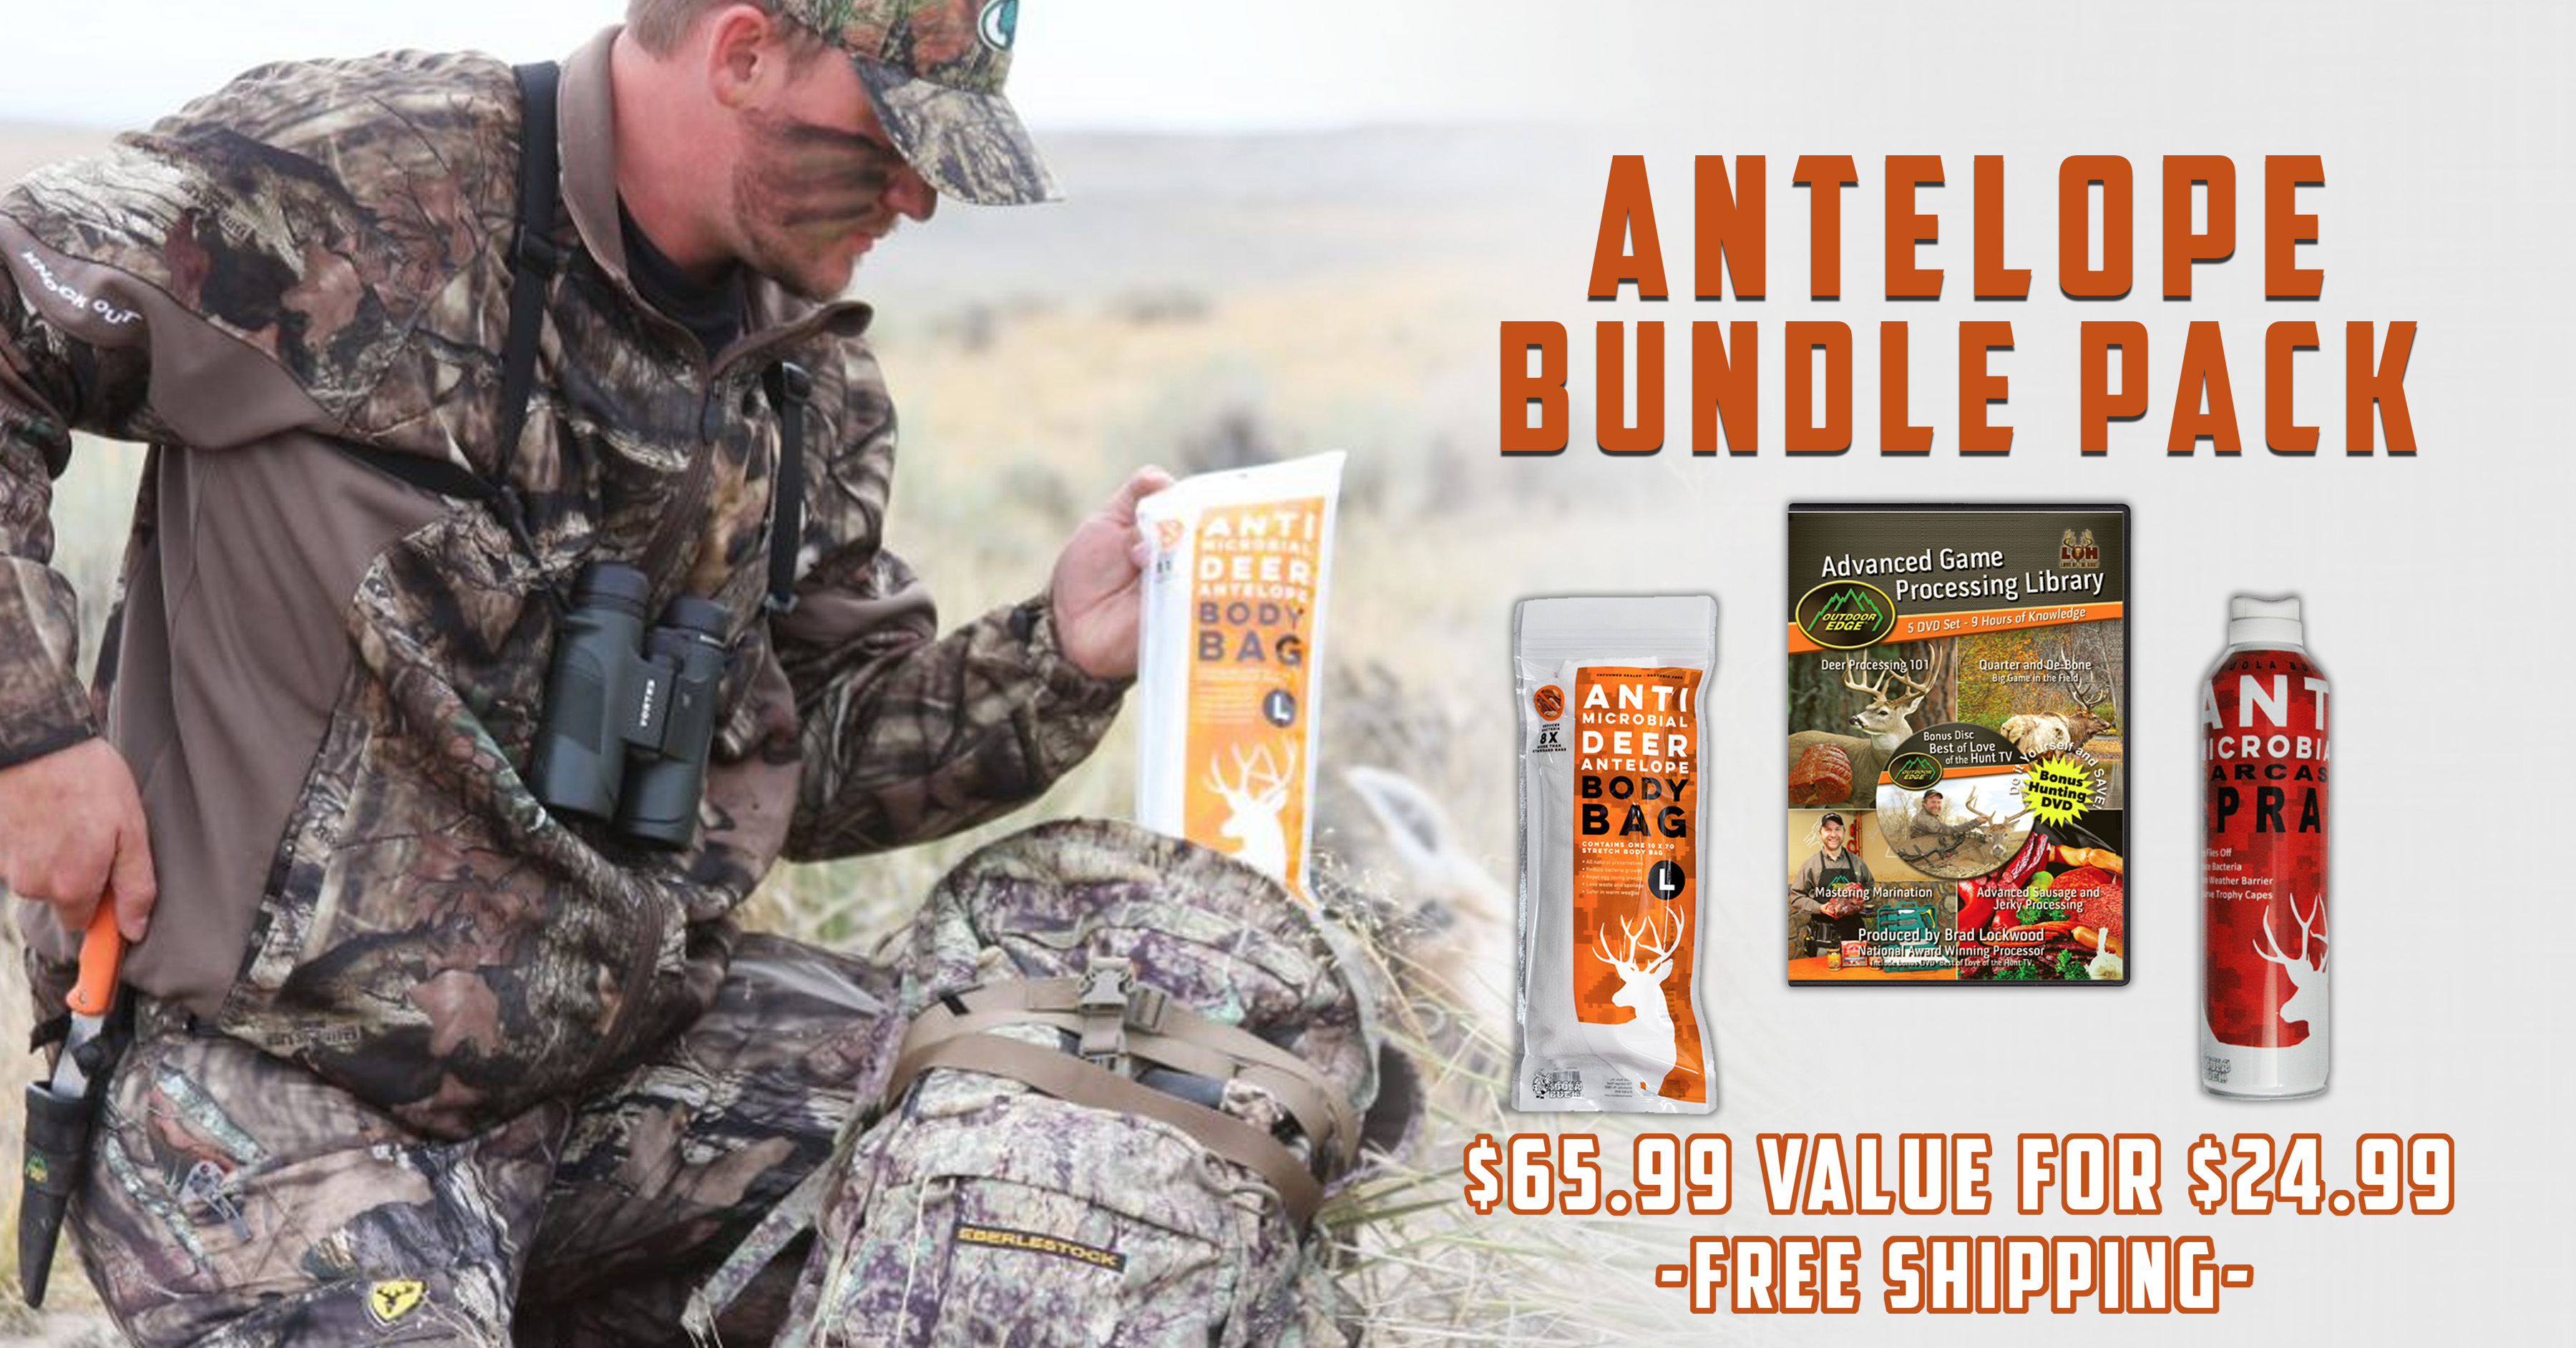 Antelope Bundle Pack